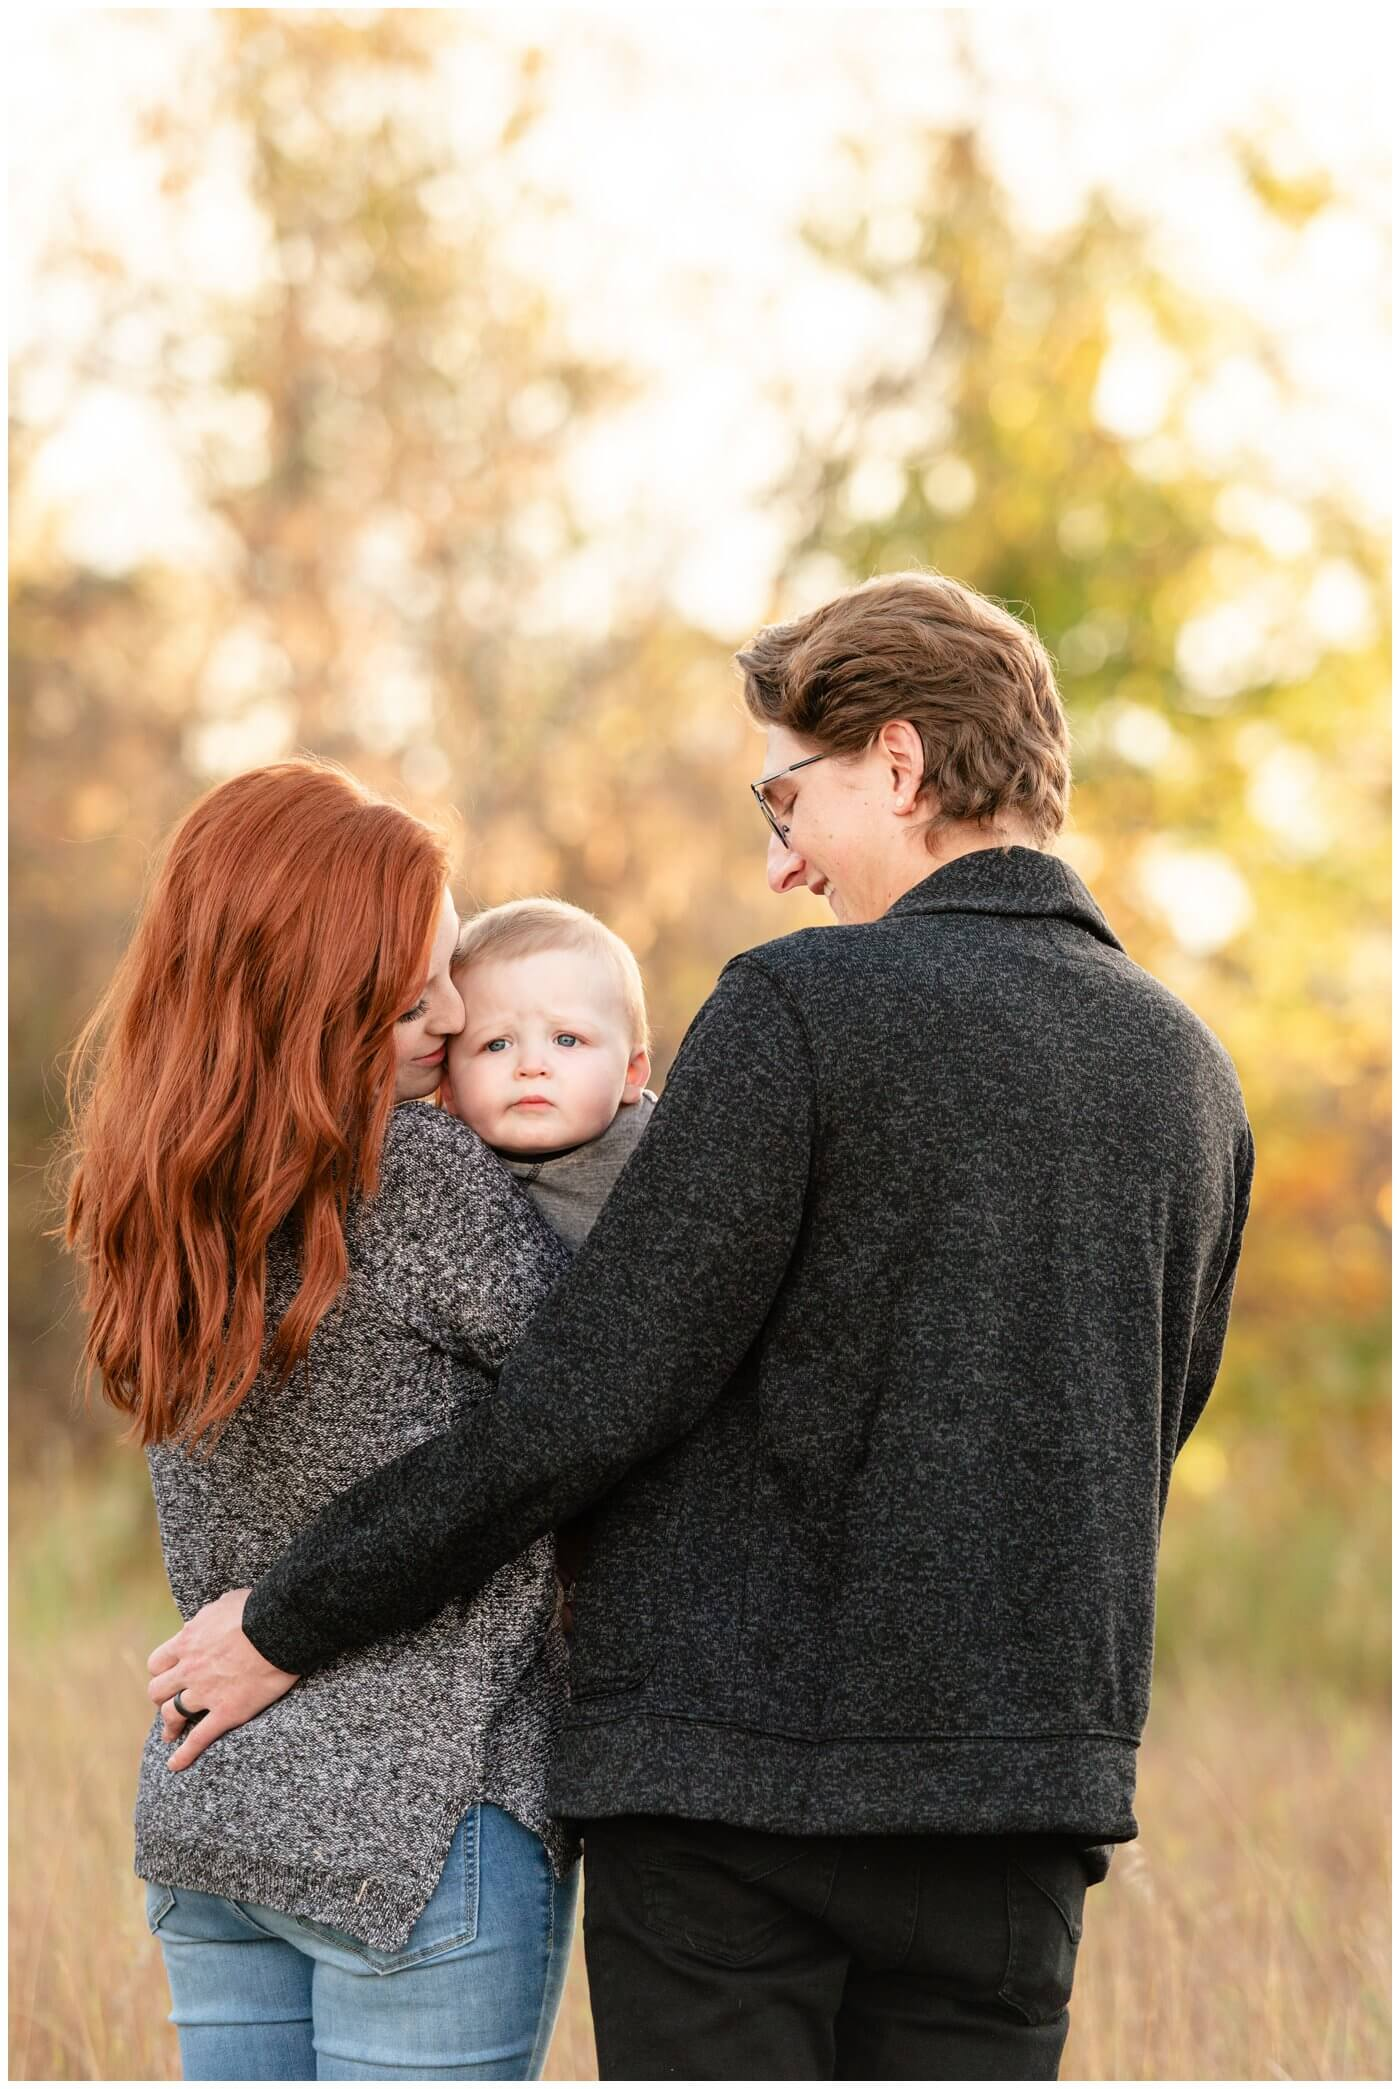 Regina-Family-Photography-McFie-family-006-Child-not-interested-in-photos-